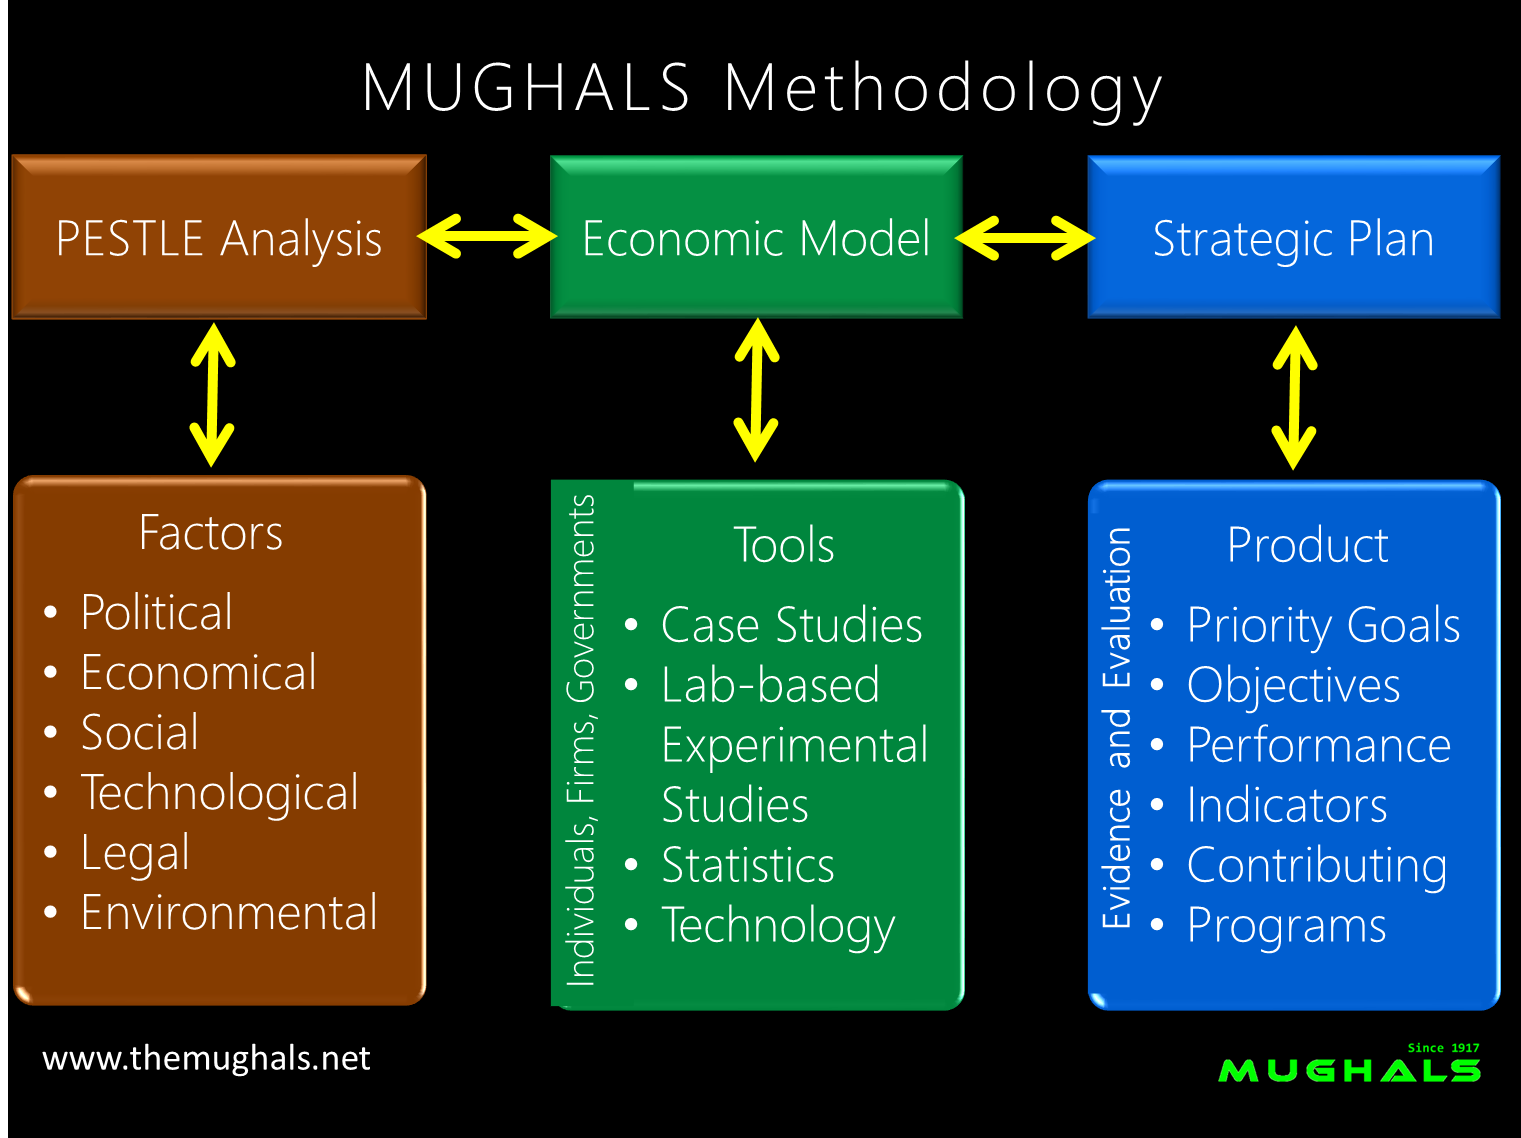 https://sites.google.com/a/themughals.net/www/home-mughals/MUGHALS_Methodology_web_main_2p.png